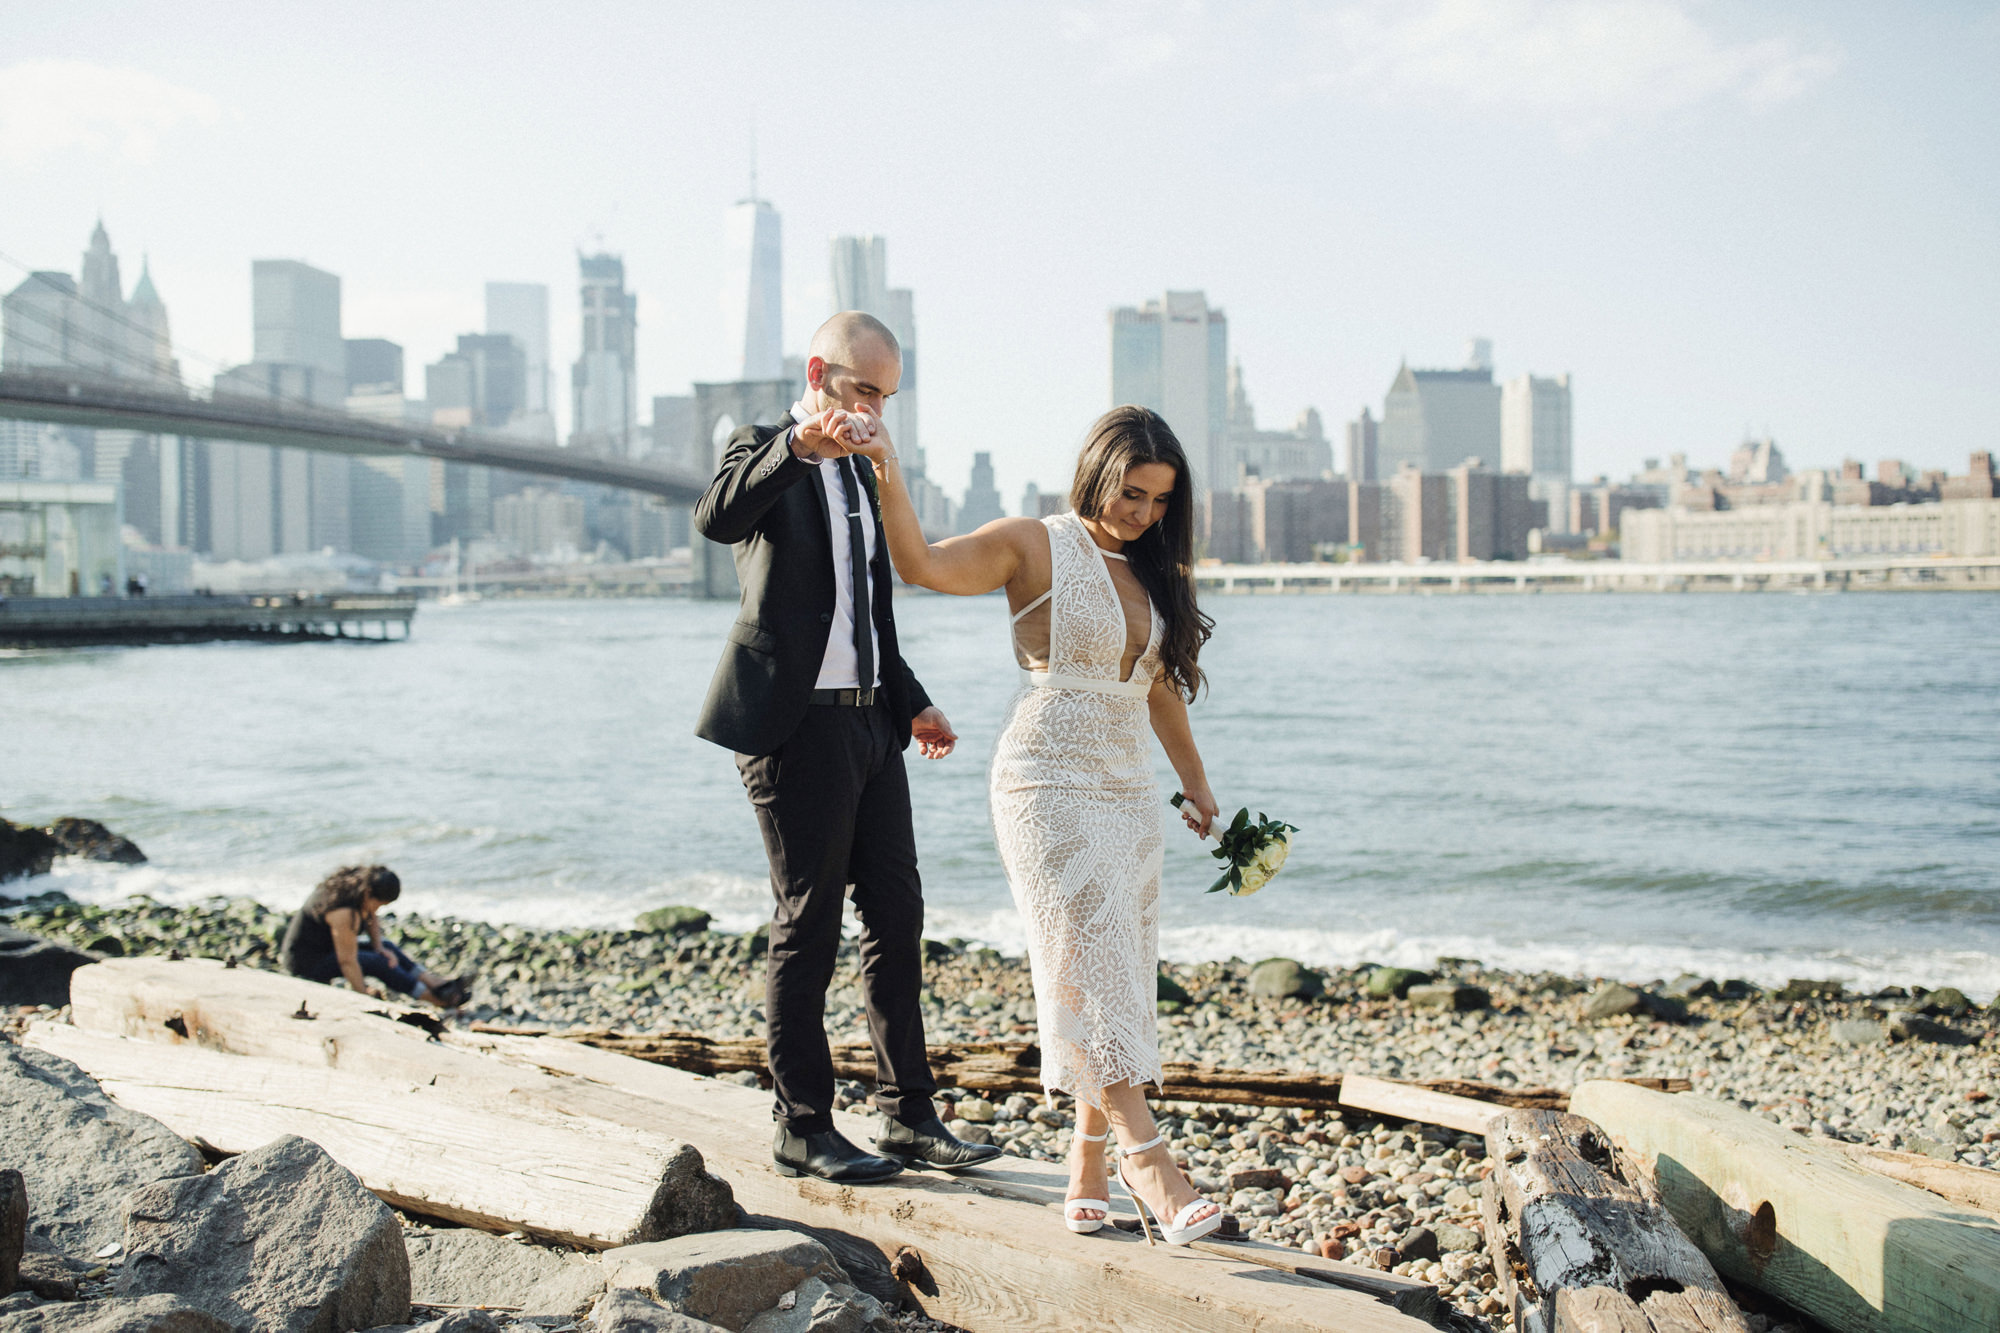 NYC_ELOPEMENT_CITYHALL_BROOKLYN_SAMMBLAKE_0038.jpg